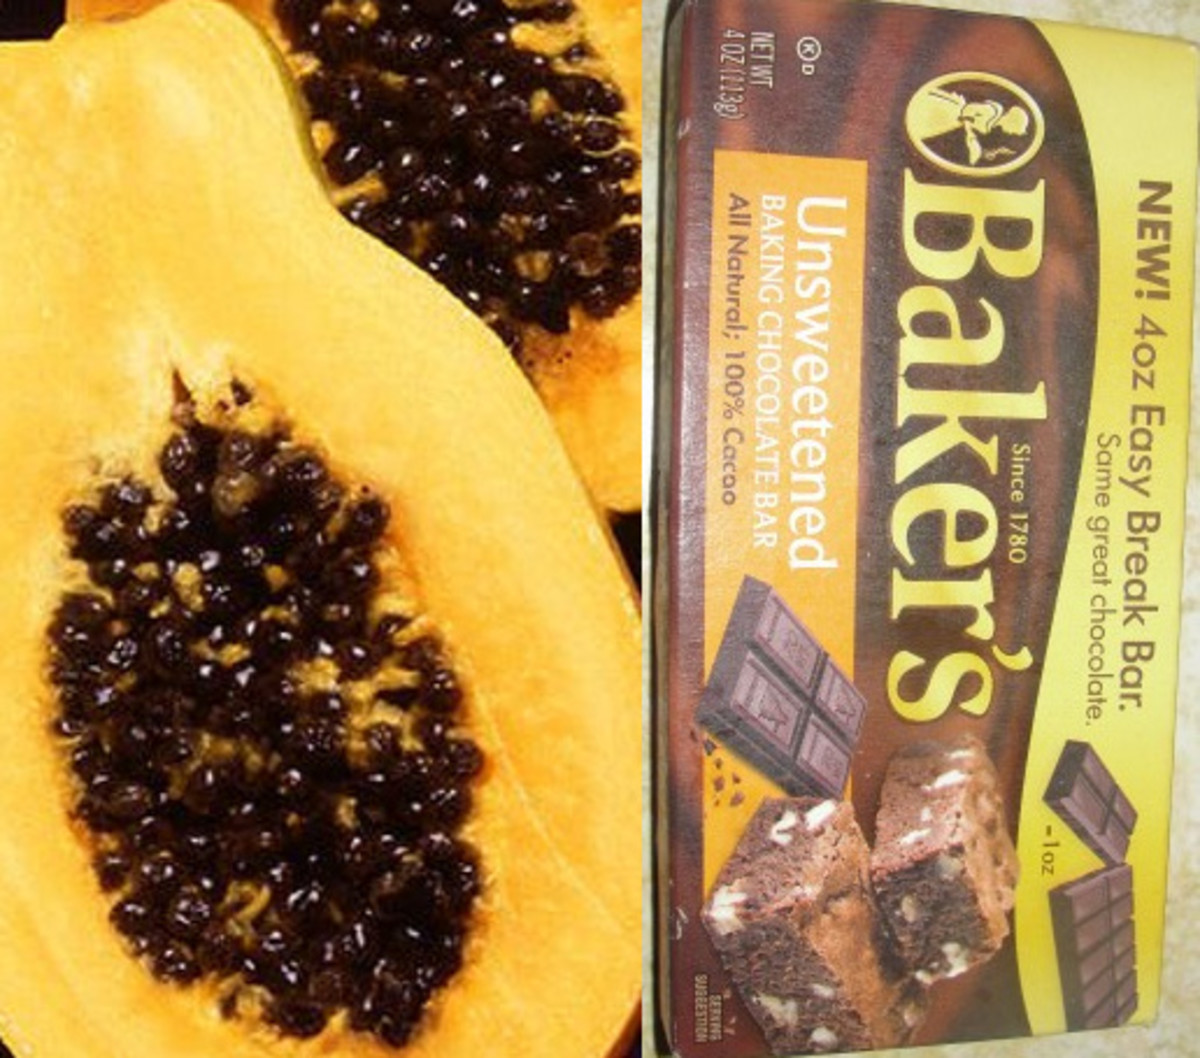 Some of the foods from tropical rainforests: papaya and chocolate